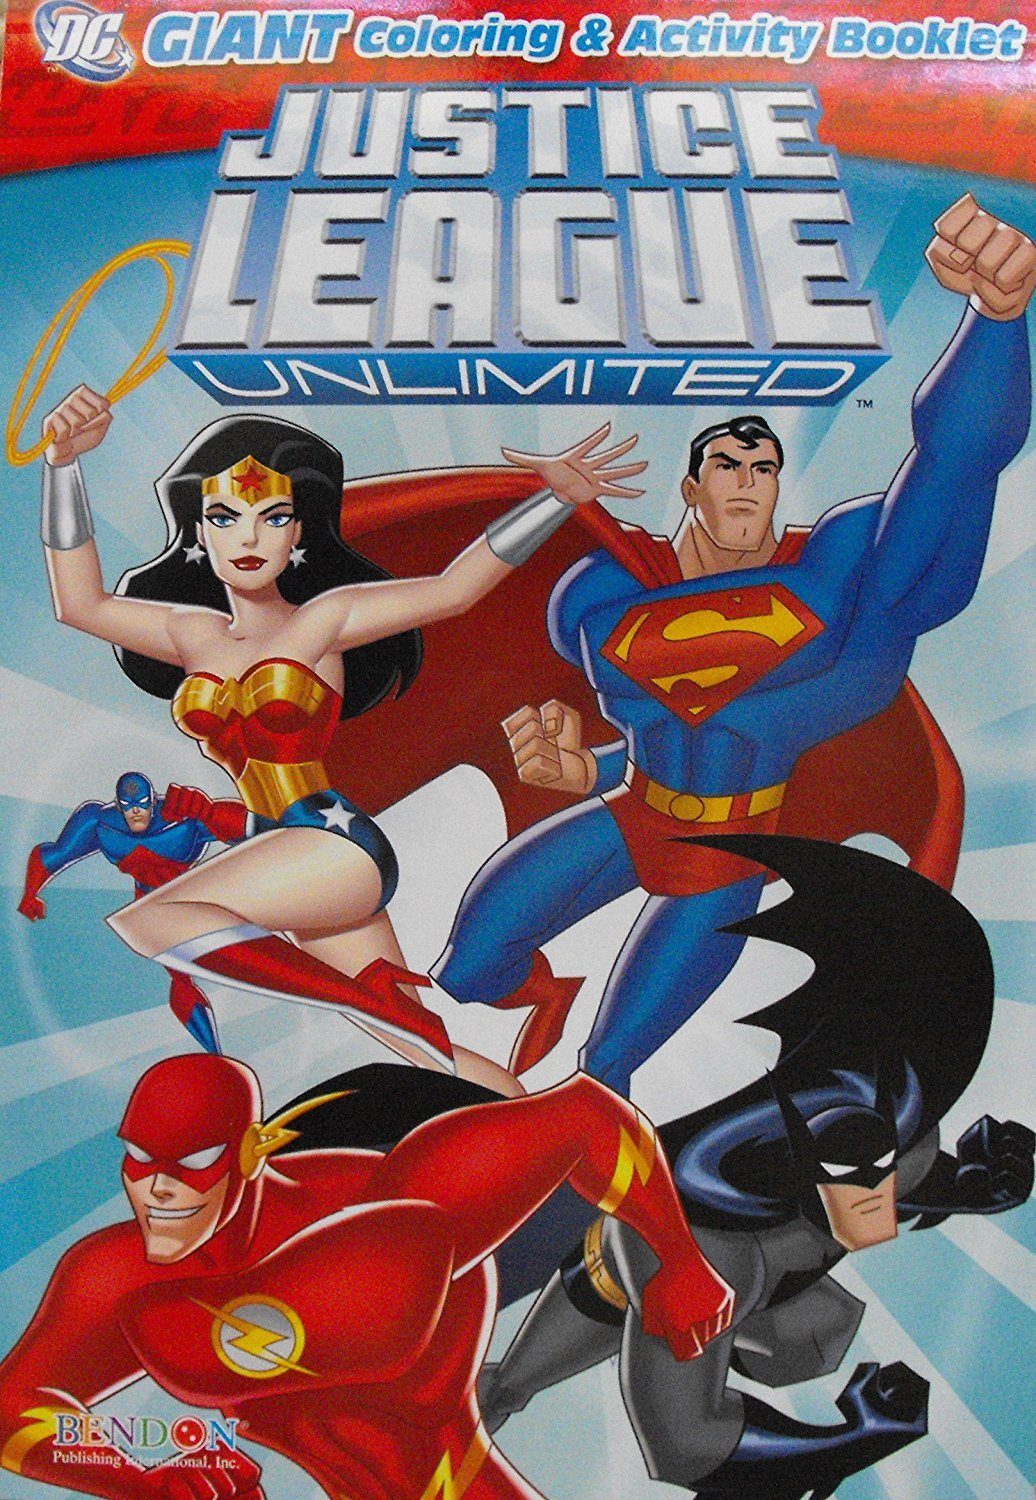 Justice League Unlimited Coloring & Activity Book